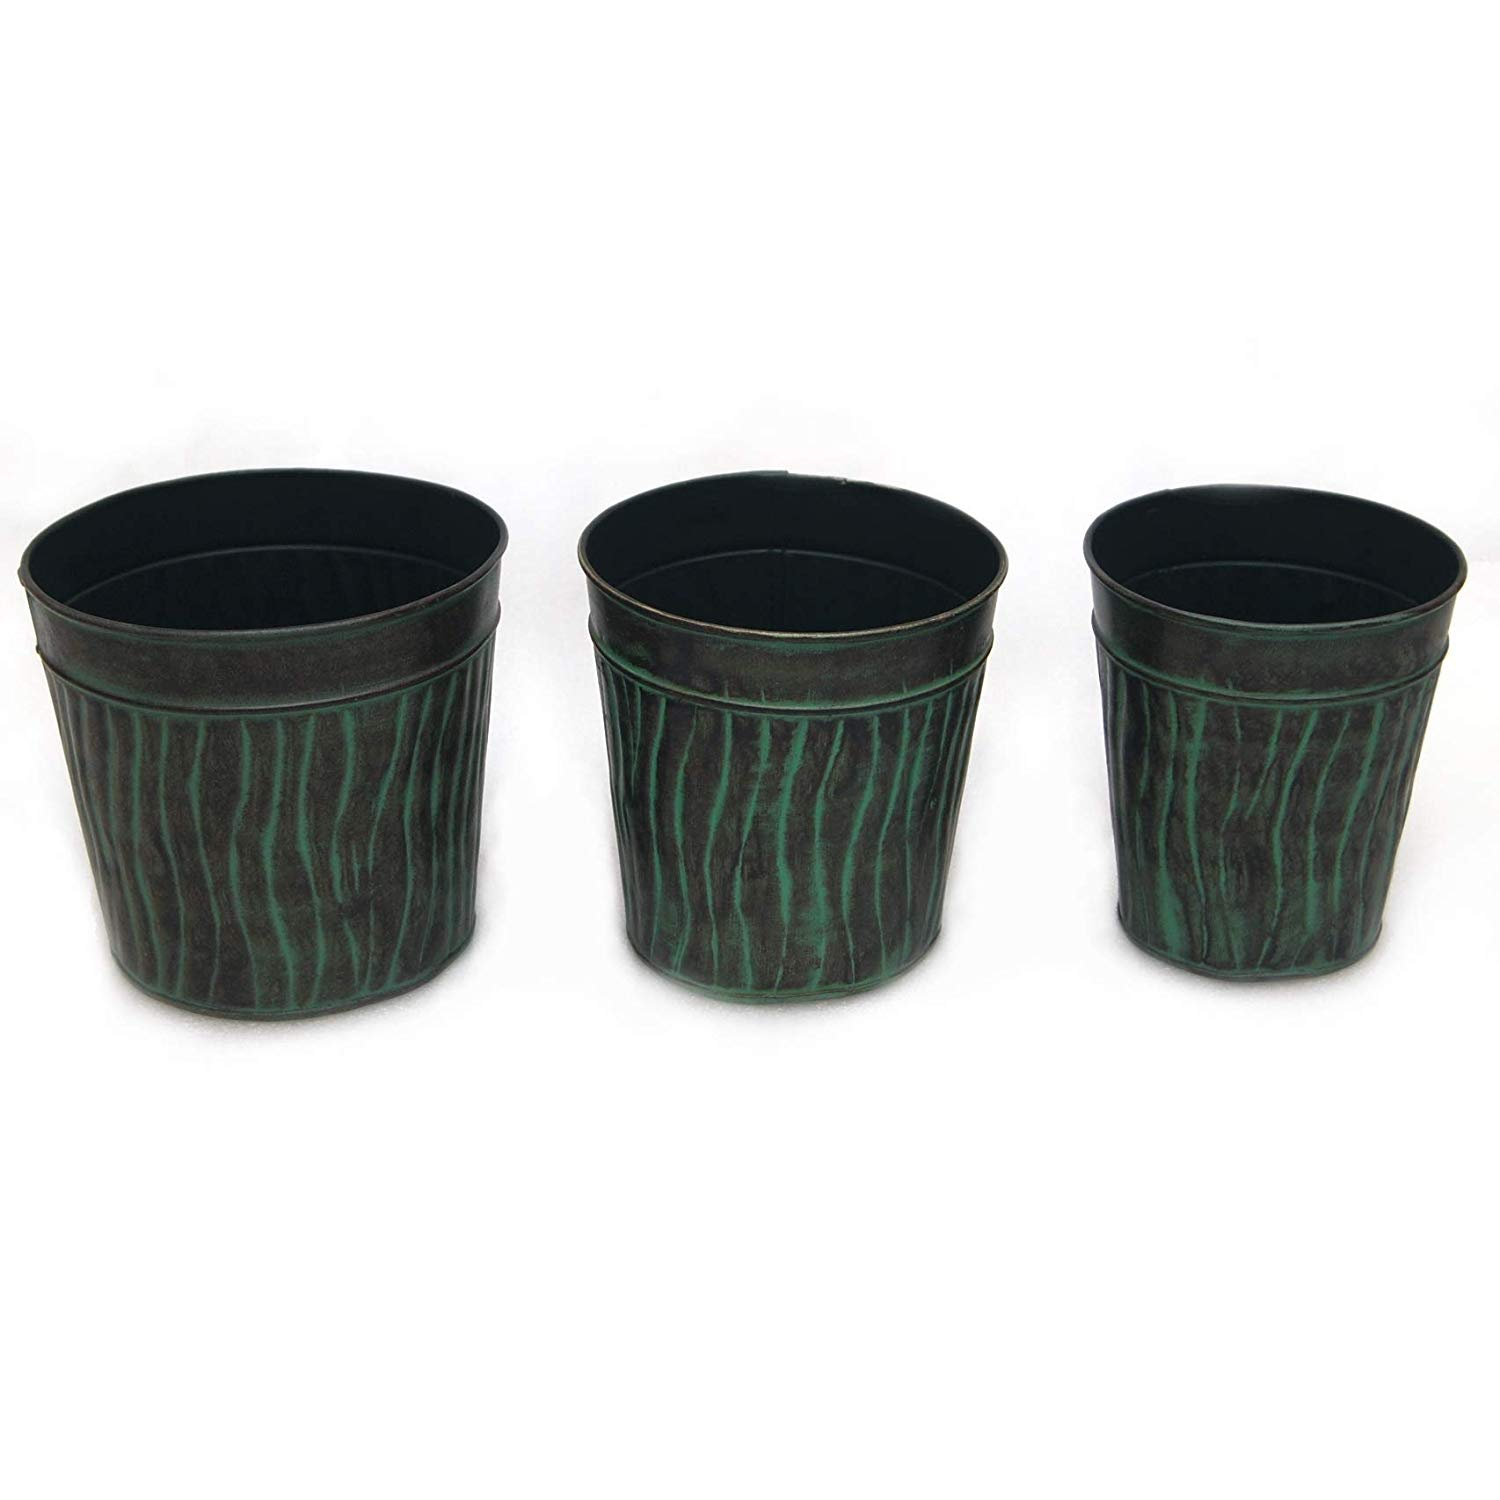 Artiq Planter Set